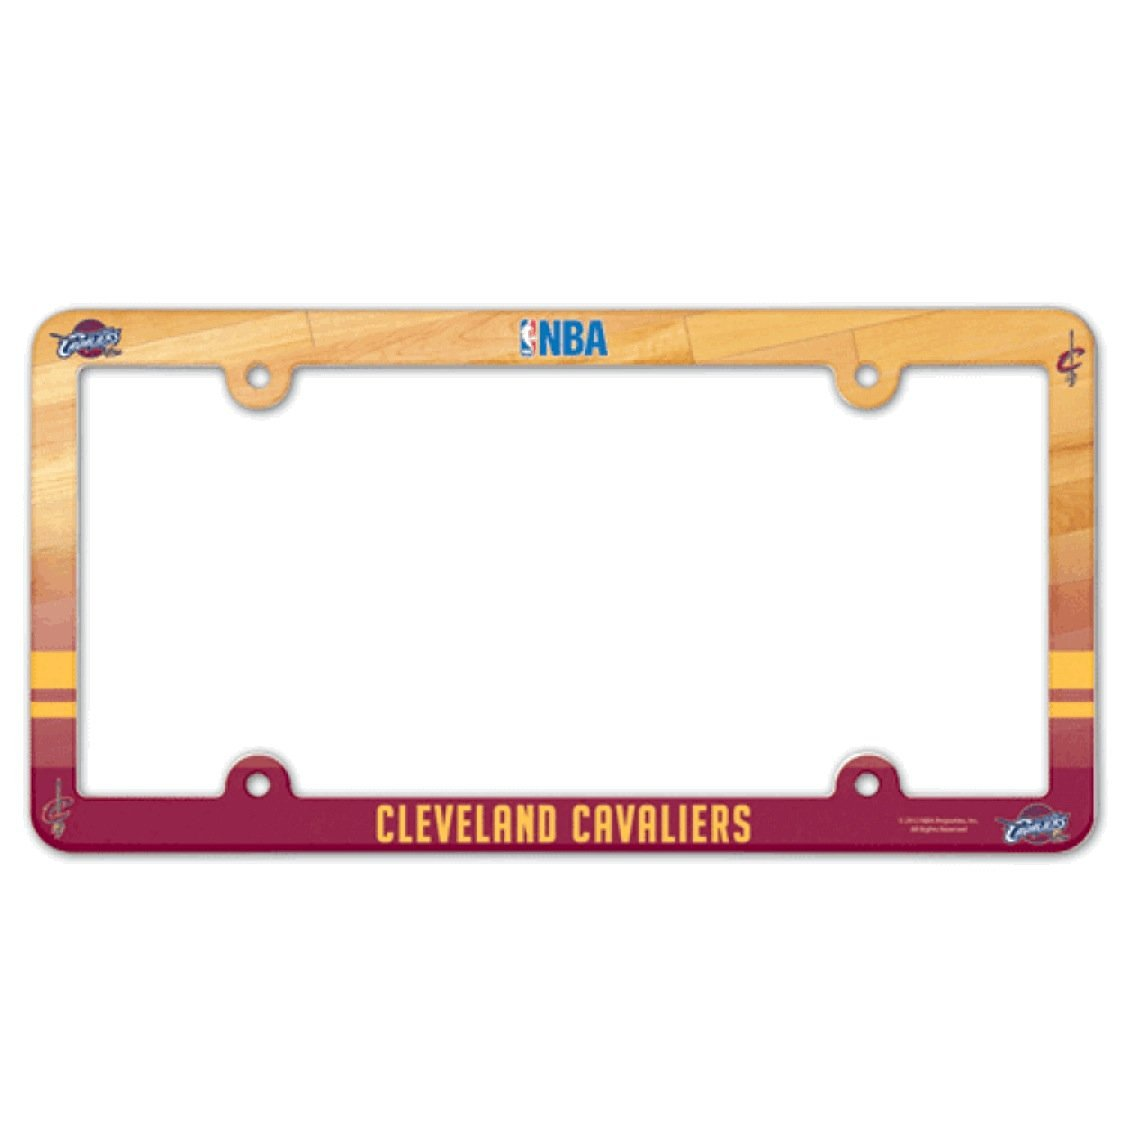 Cleveland Cavaliers License Plate Frame (NBA, 2-Pack)